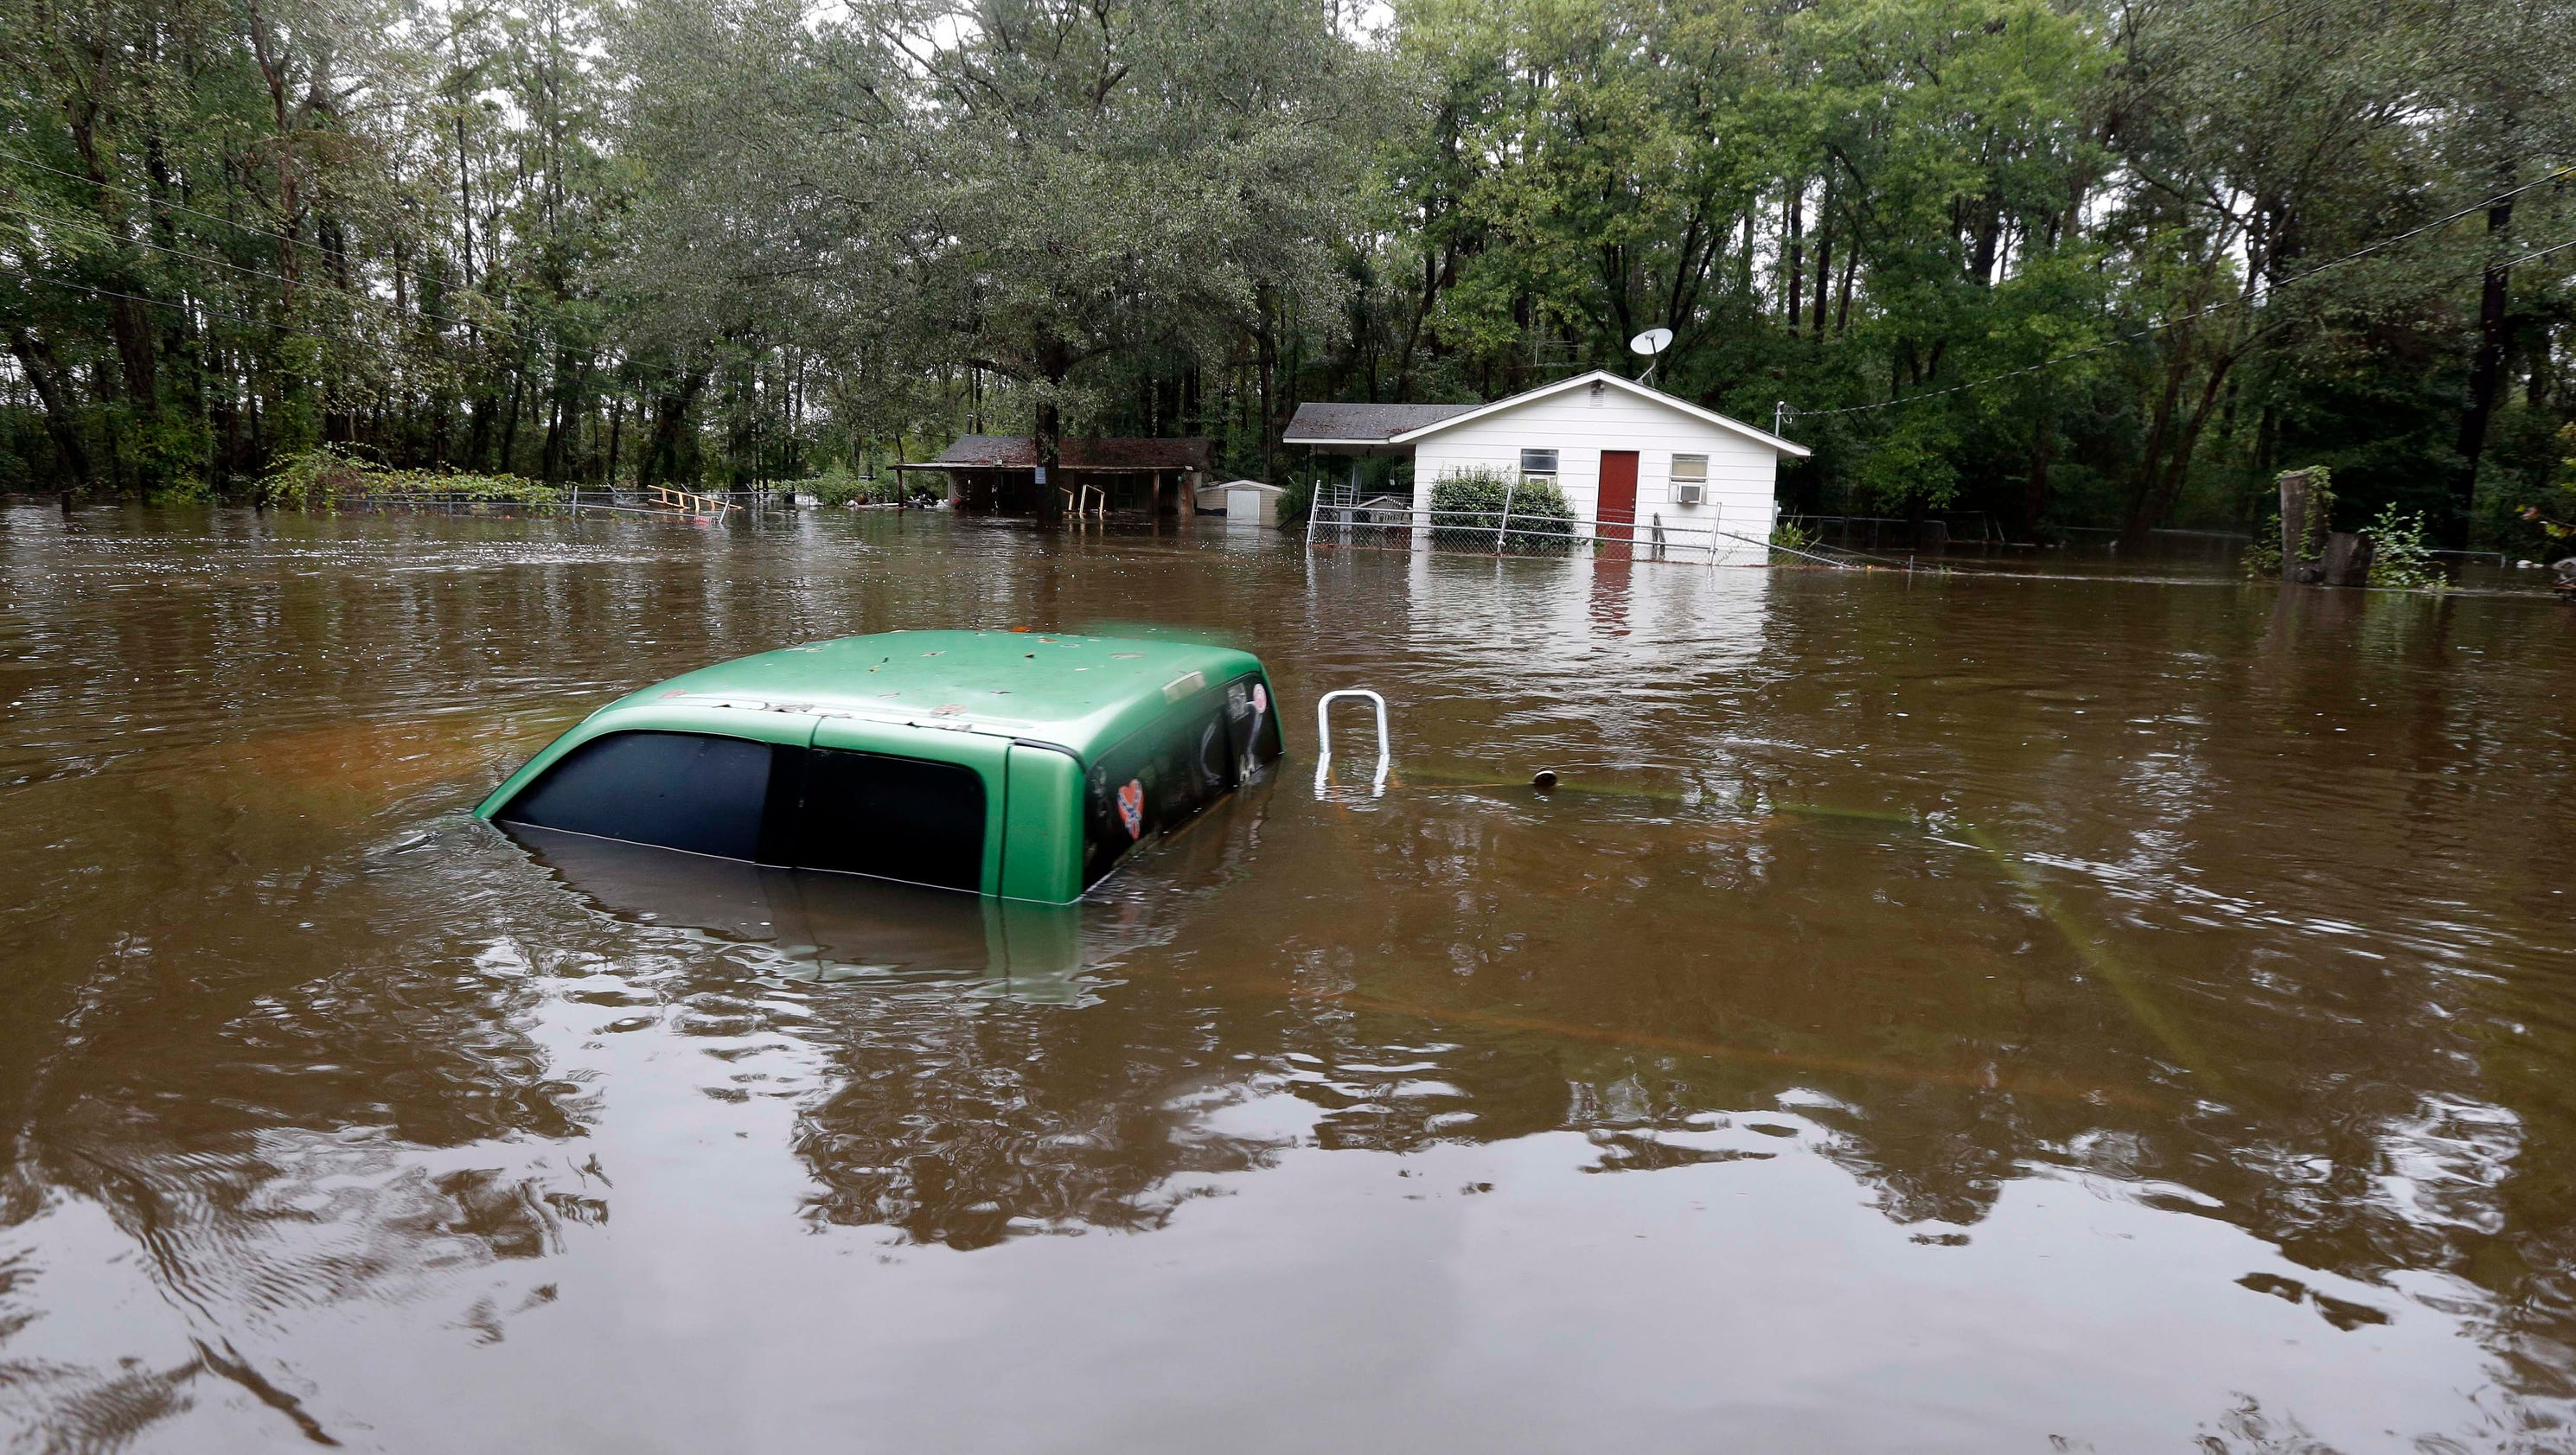 Death toll rises to 10 in unrelenting s c storm for R kitchen south carolina